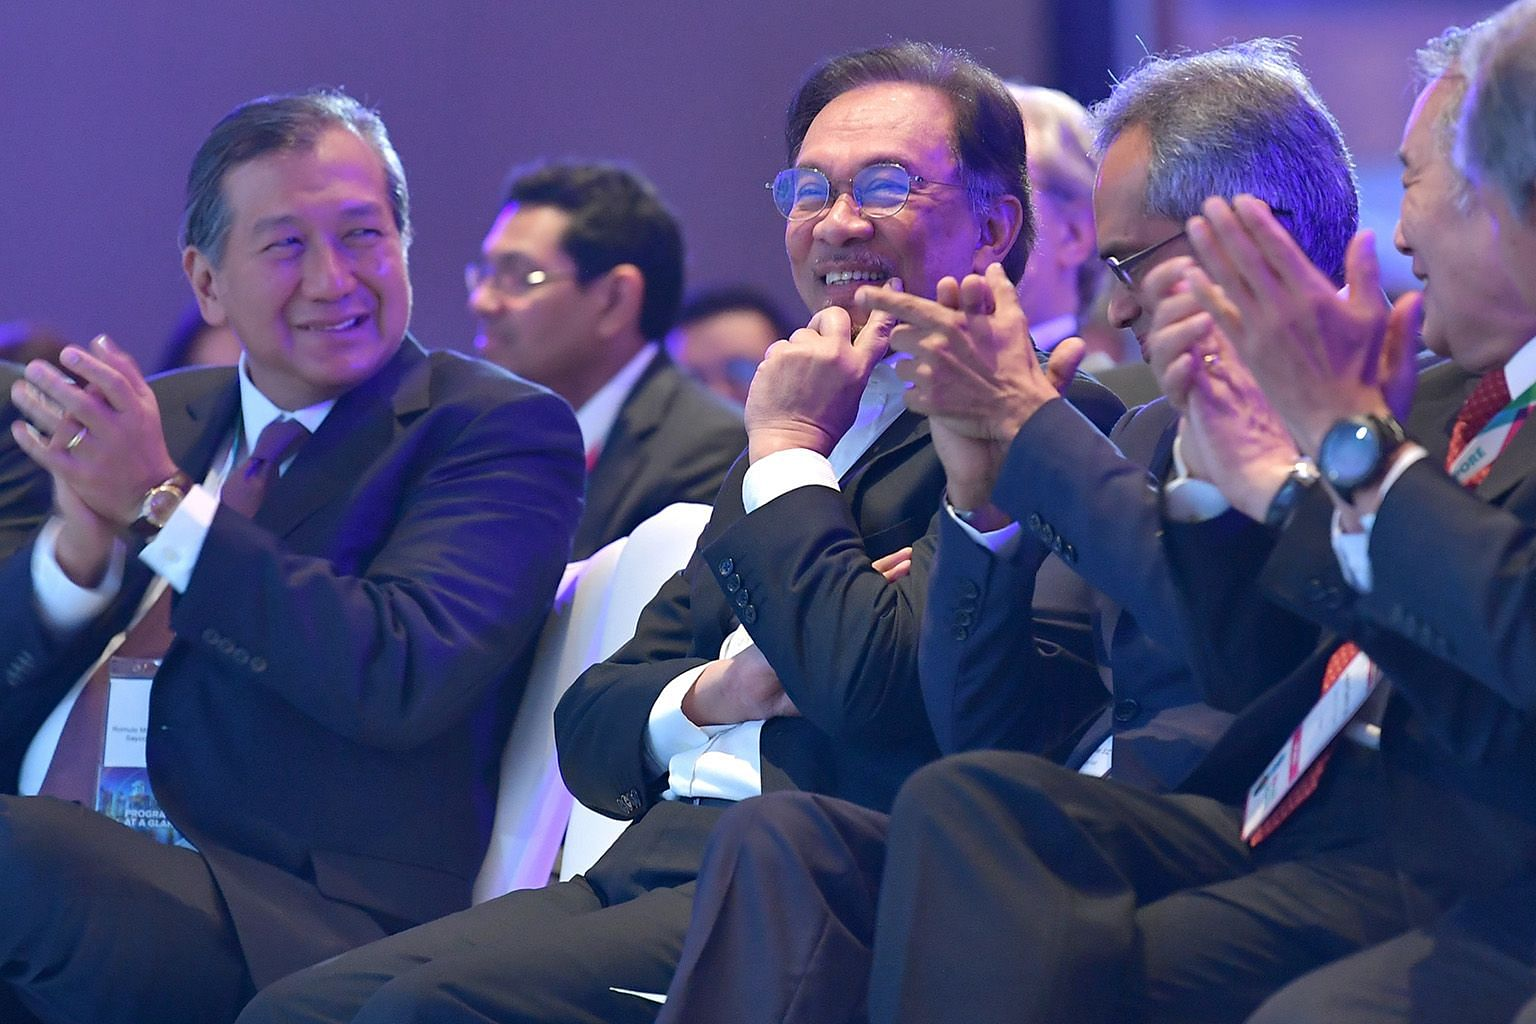 Datuk Seri Anwar Ibrahim (second from left) discussing the present and future challenges facing Malaysia and the region at the IPBA event yesterday. With him are (from left) IPBA president Perry Pe, moderator Francis Xavier, and Justice Quentin Loh.